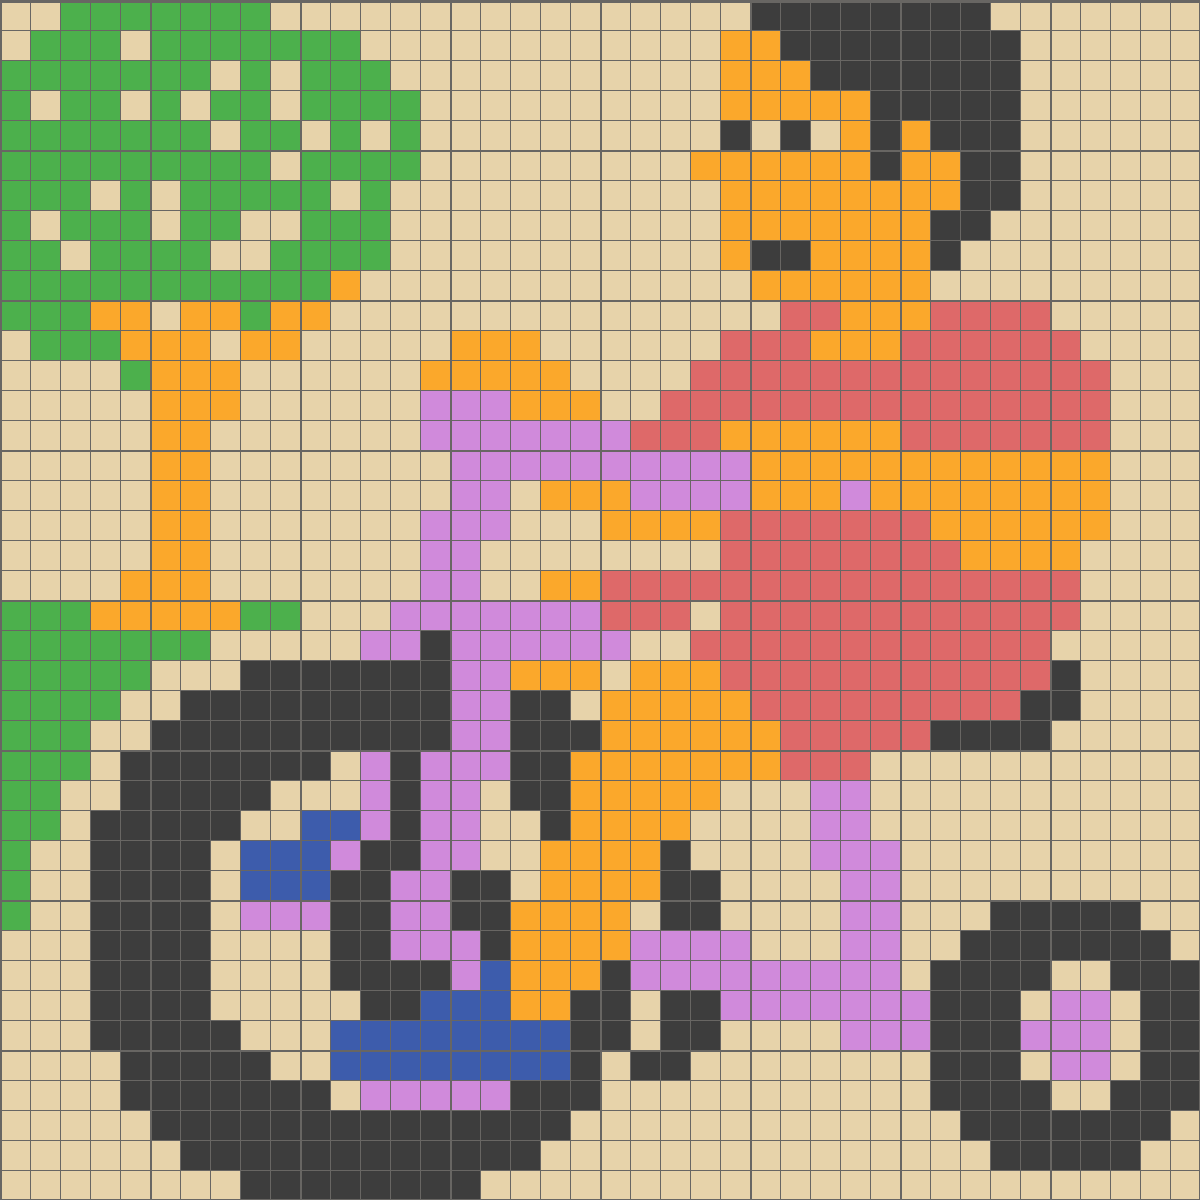 Solution for color CrossMe Level 7.28 - Bicyclist